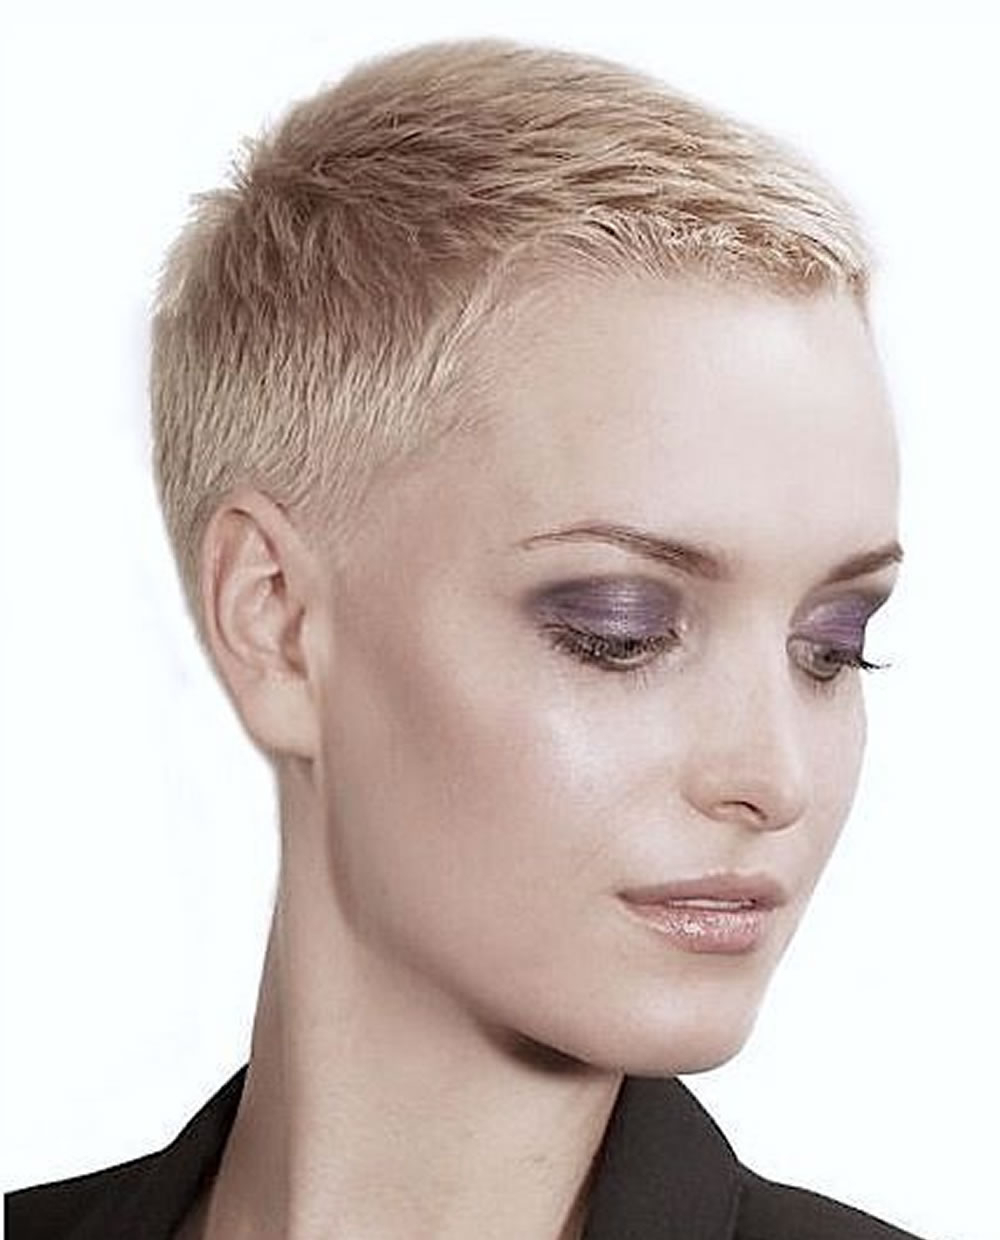 Top 100 Beautiful Short Haircuts For Women 2018 | Images+Videos For Short Female Hair Cuts (View 5 of 25)